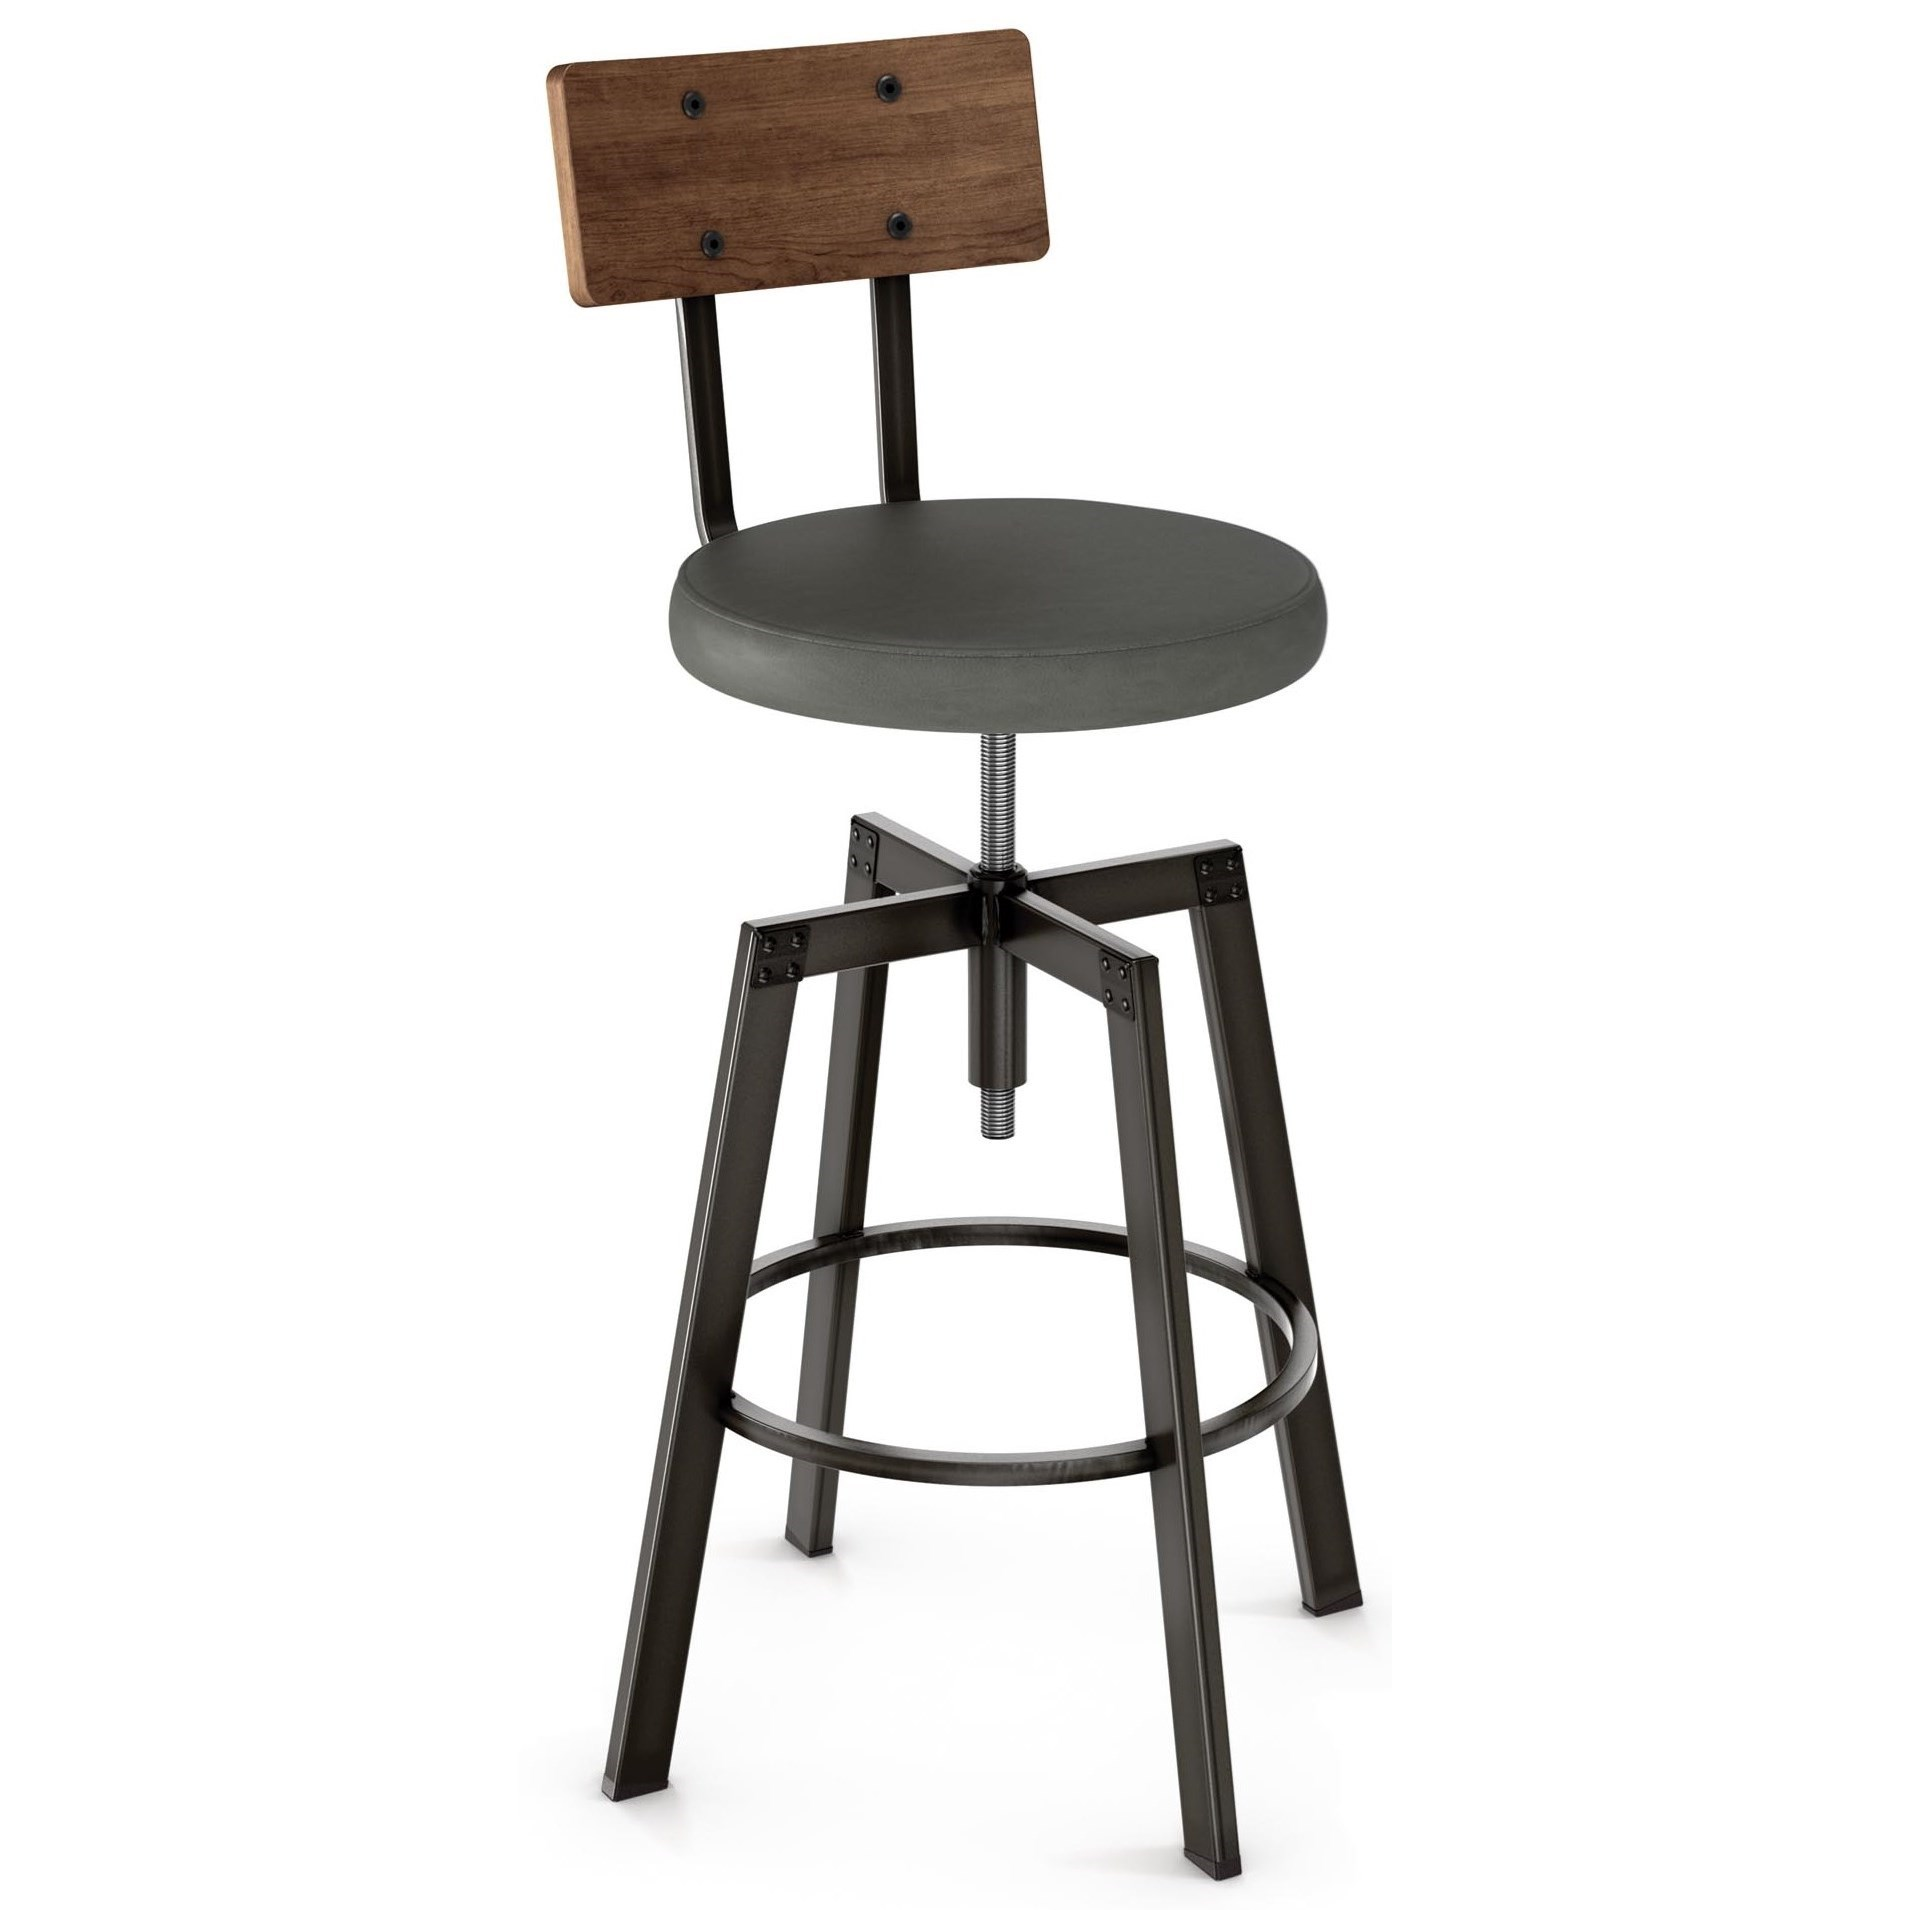 Industrial Architect Stool with Upholstered Seat by Amisco at Dinette Depot